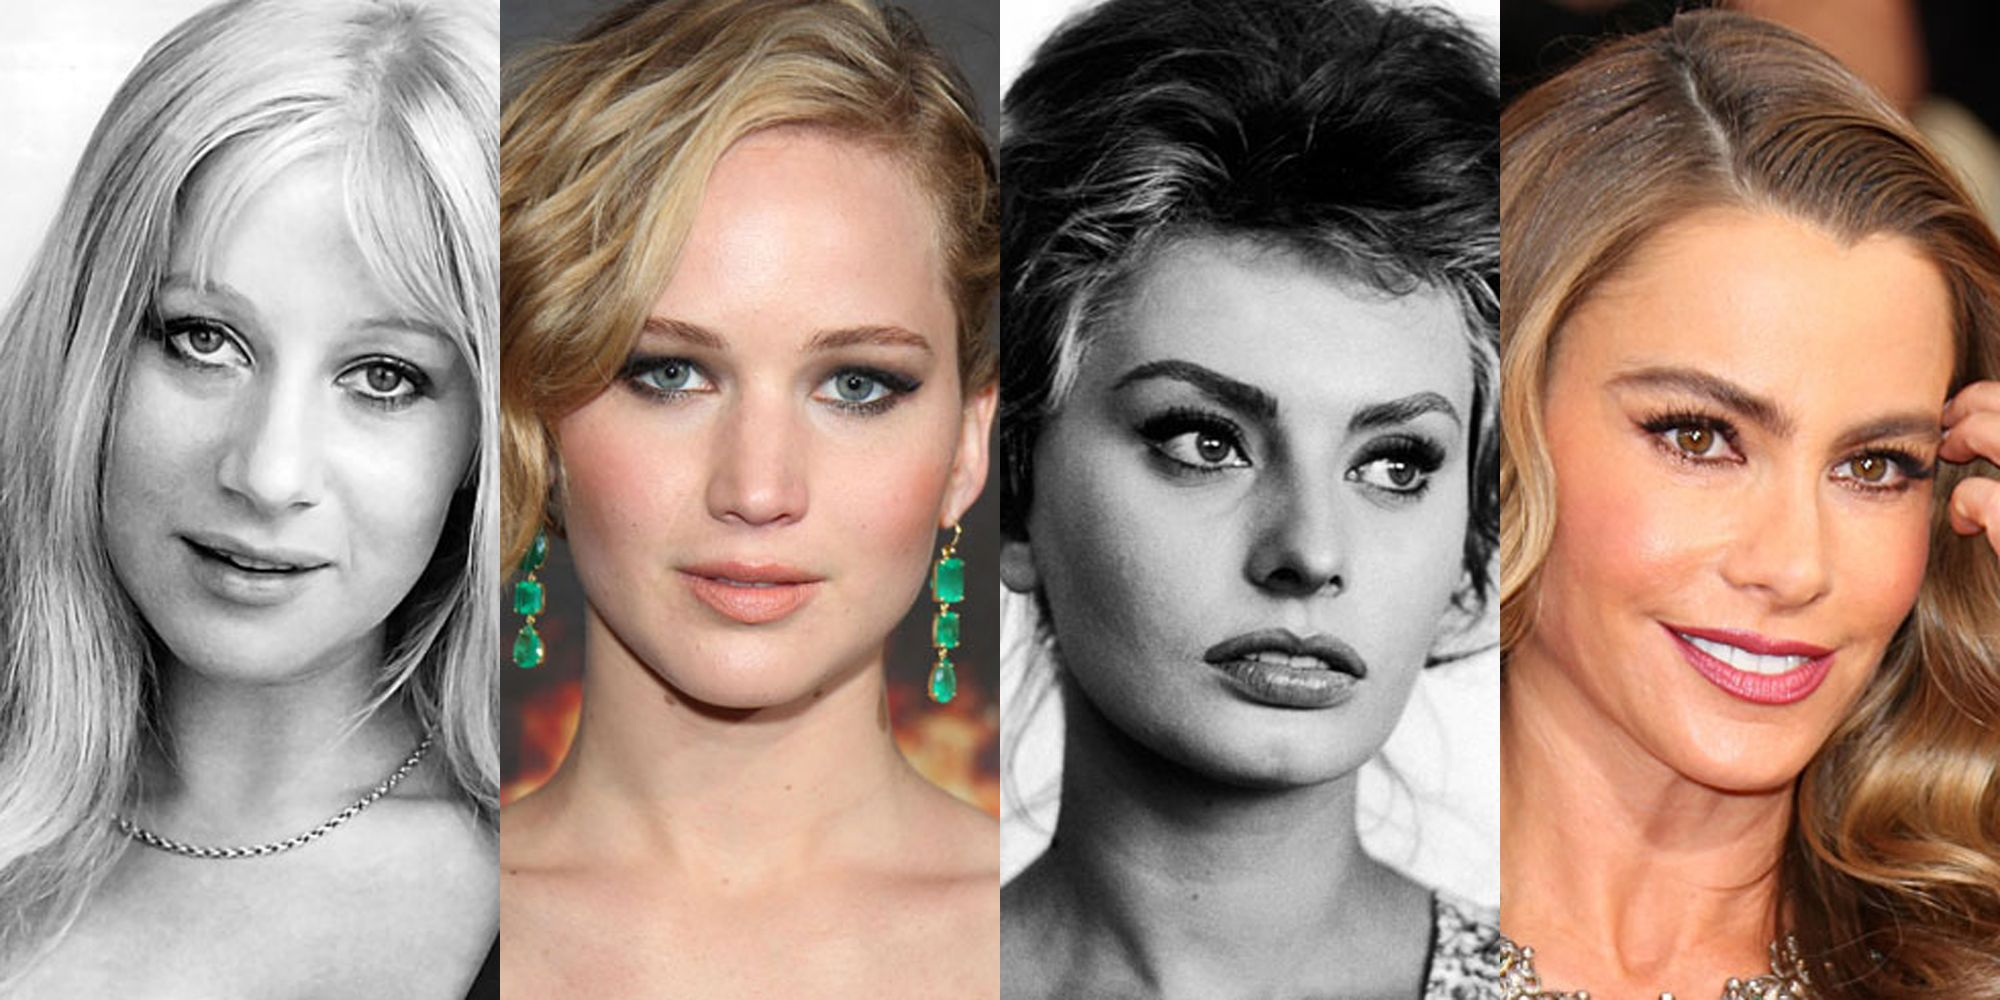 39 Celebrities and Their Vintage Doppelgängers